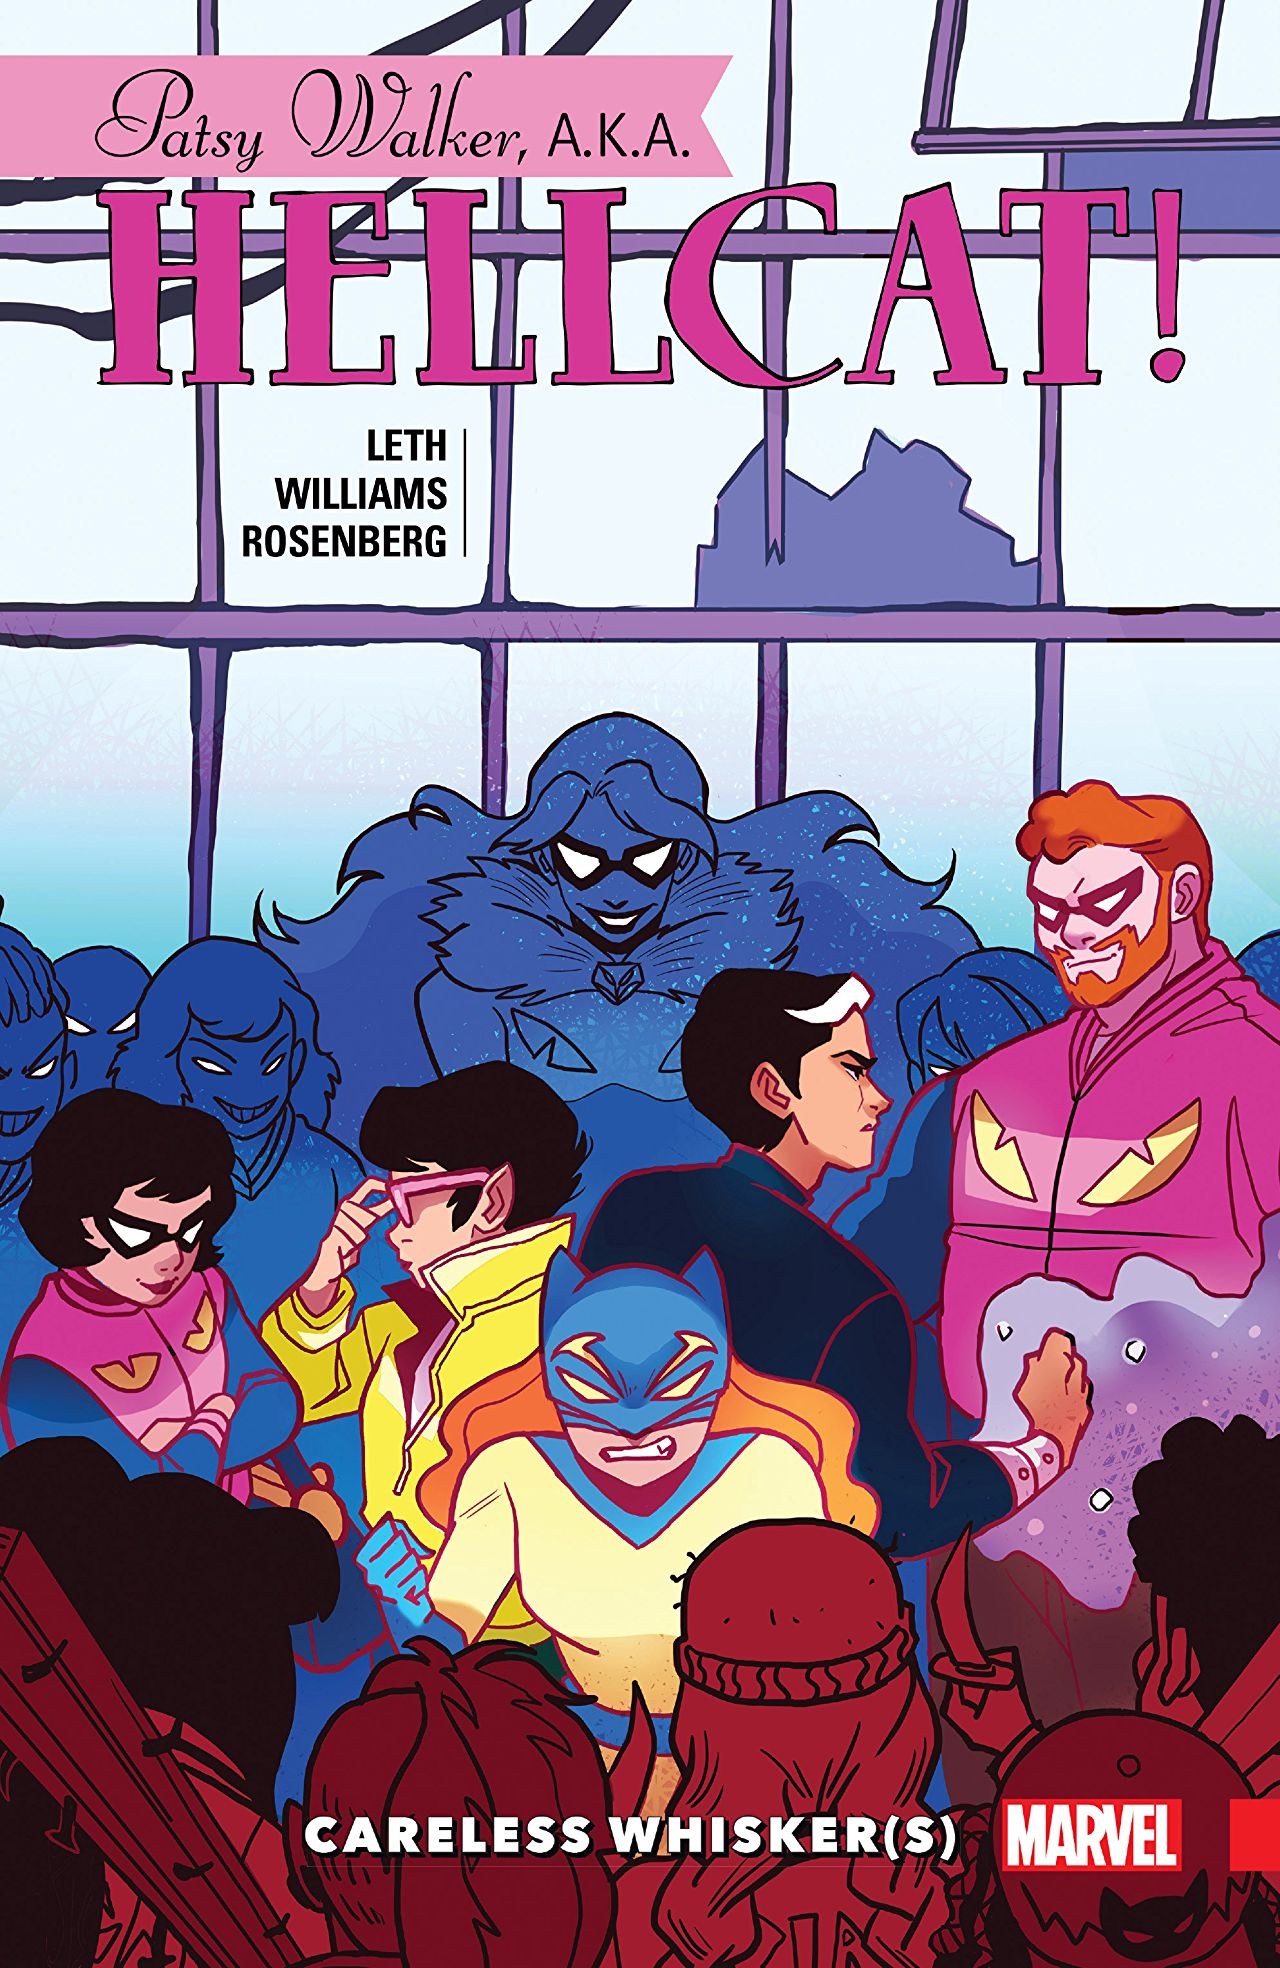 Patsy Walker, A.K.A. Hellcat! Vol 3